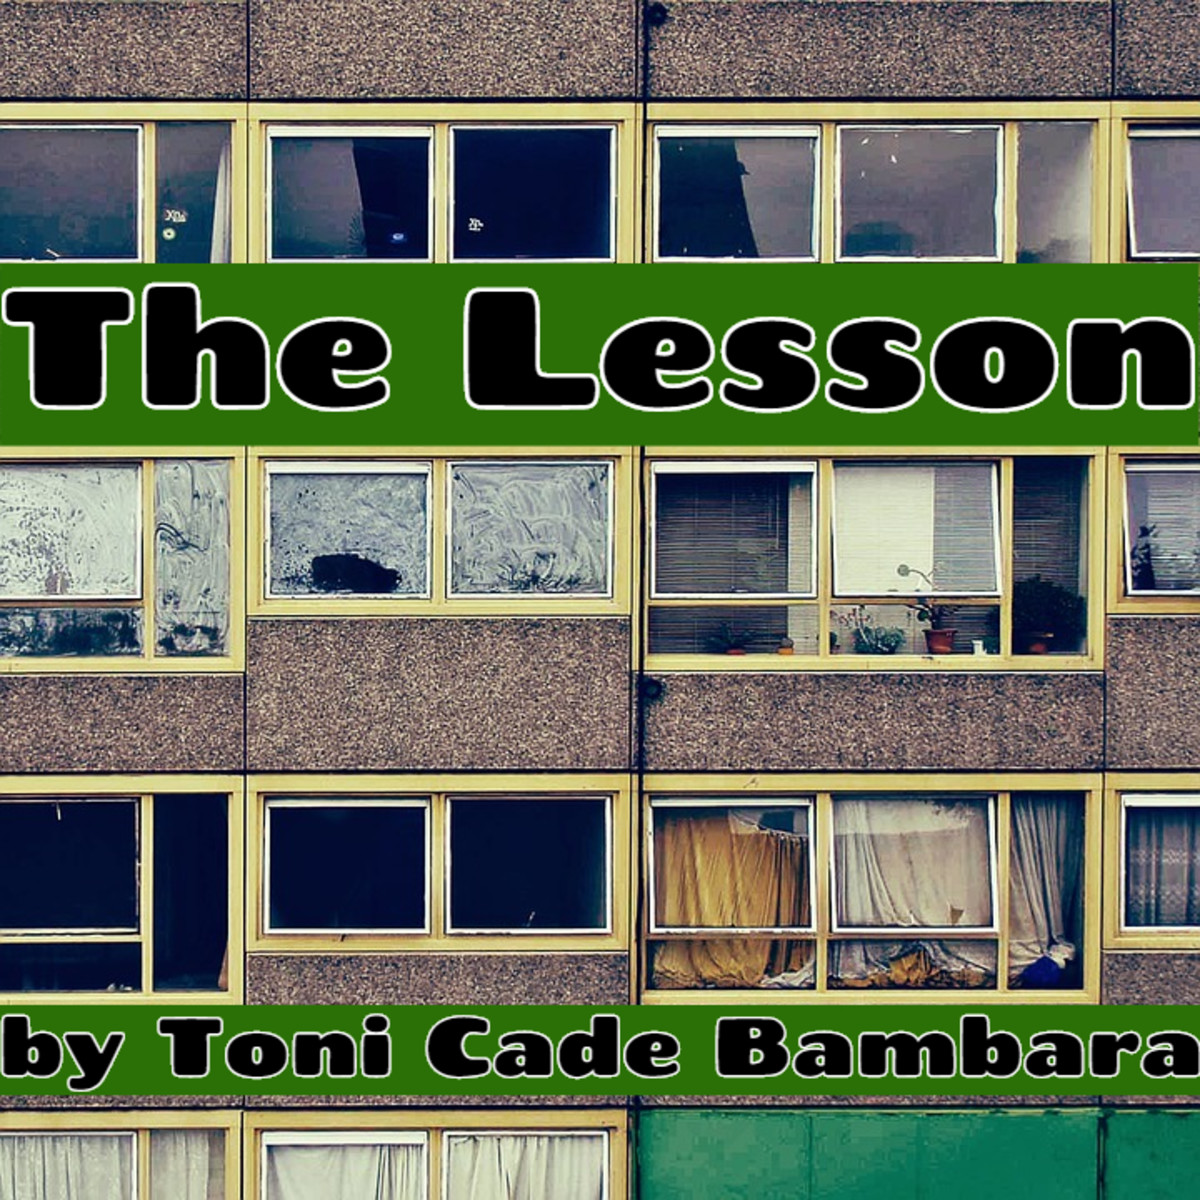 """Analysis of """"The Lesson"""" by Toni Cade Bambara"""